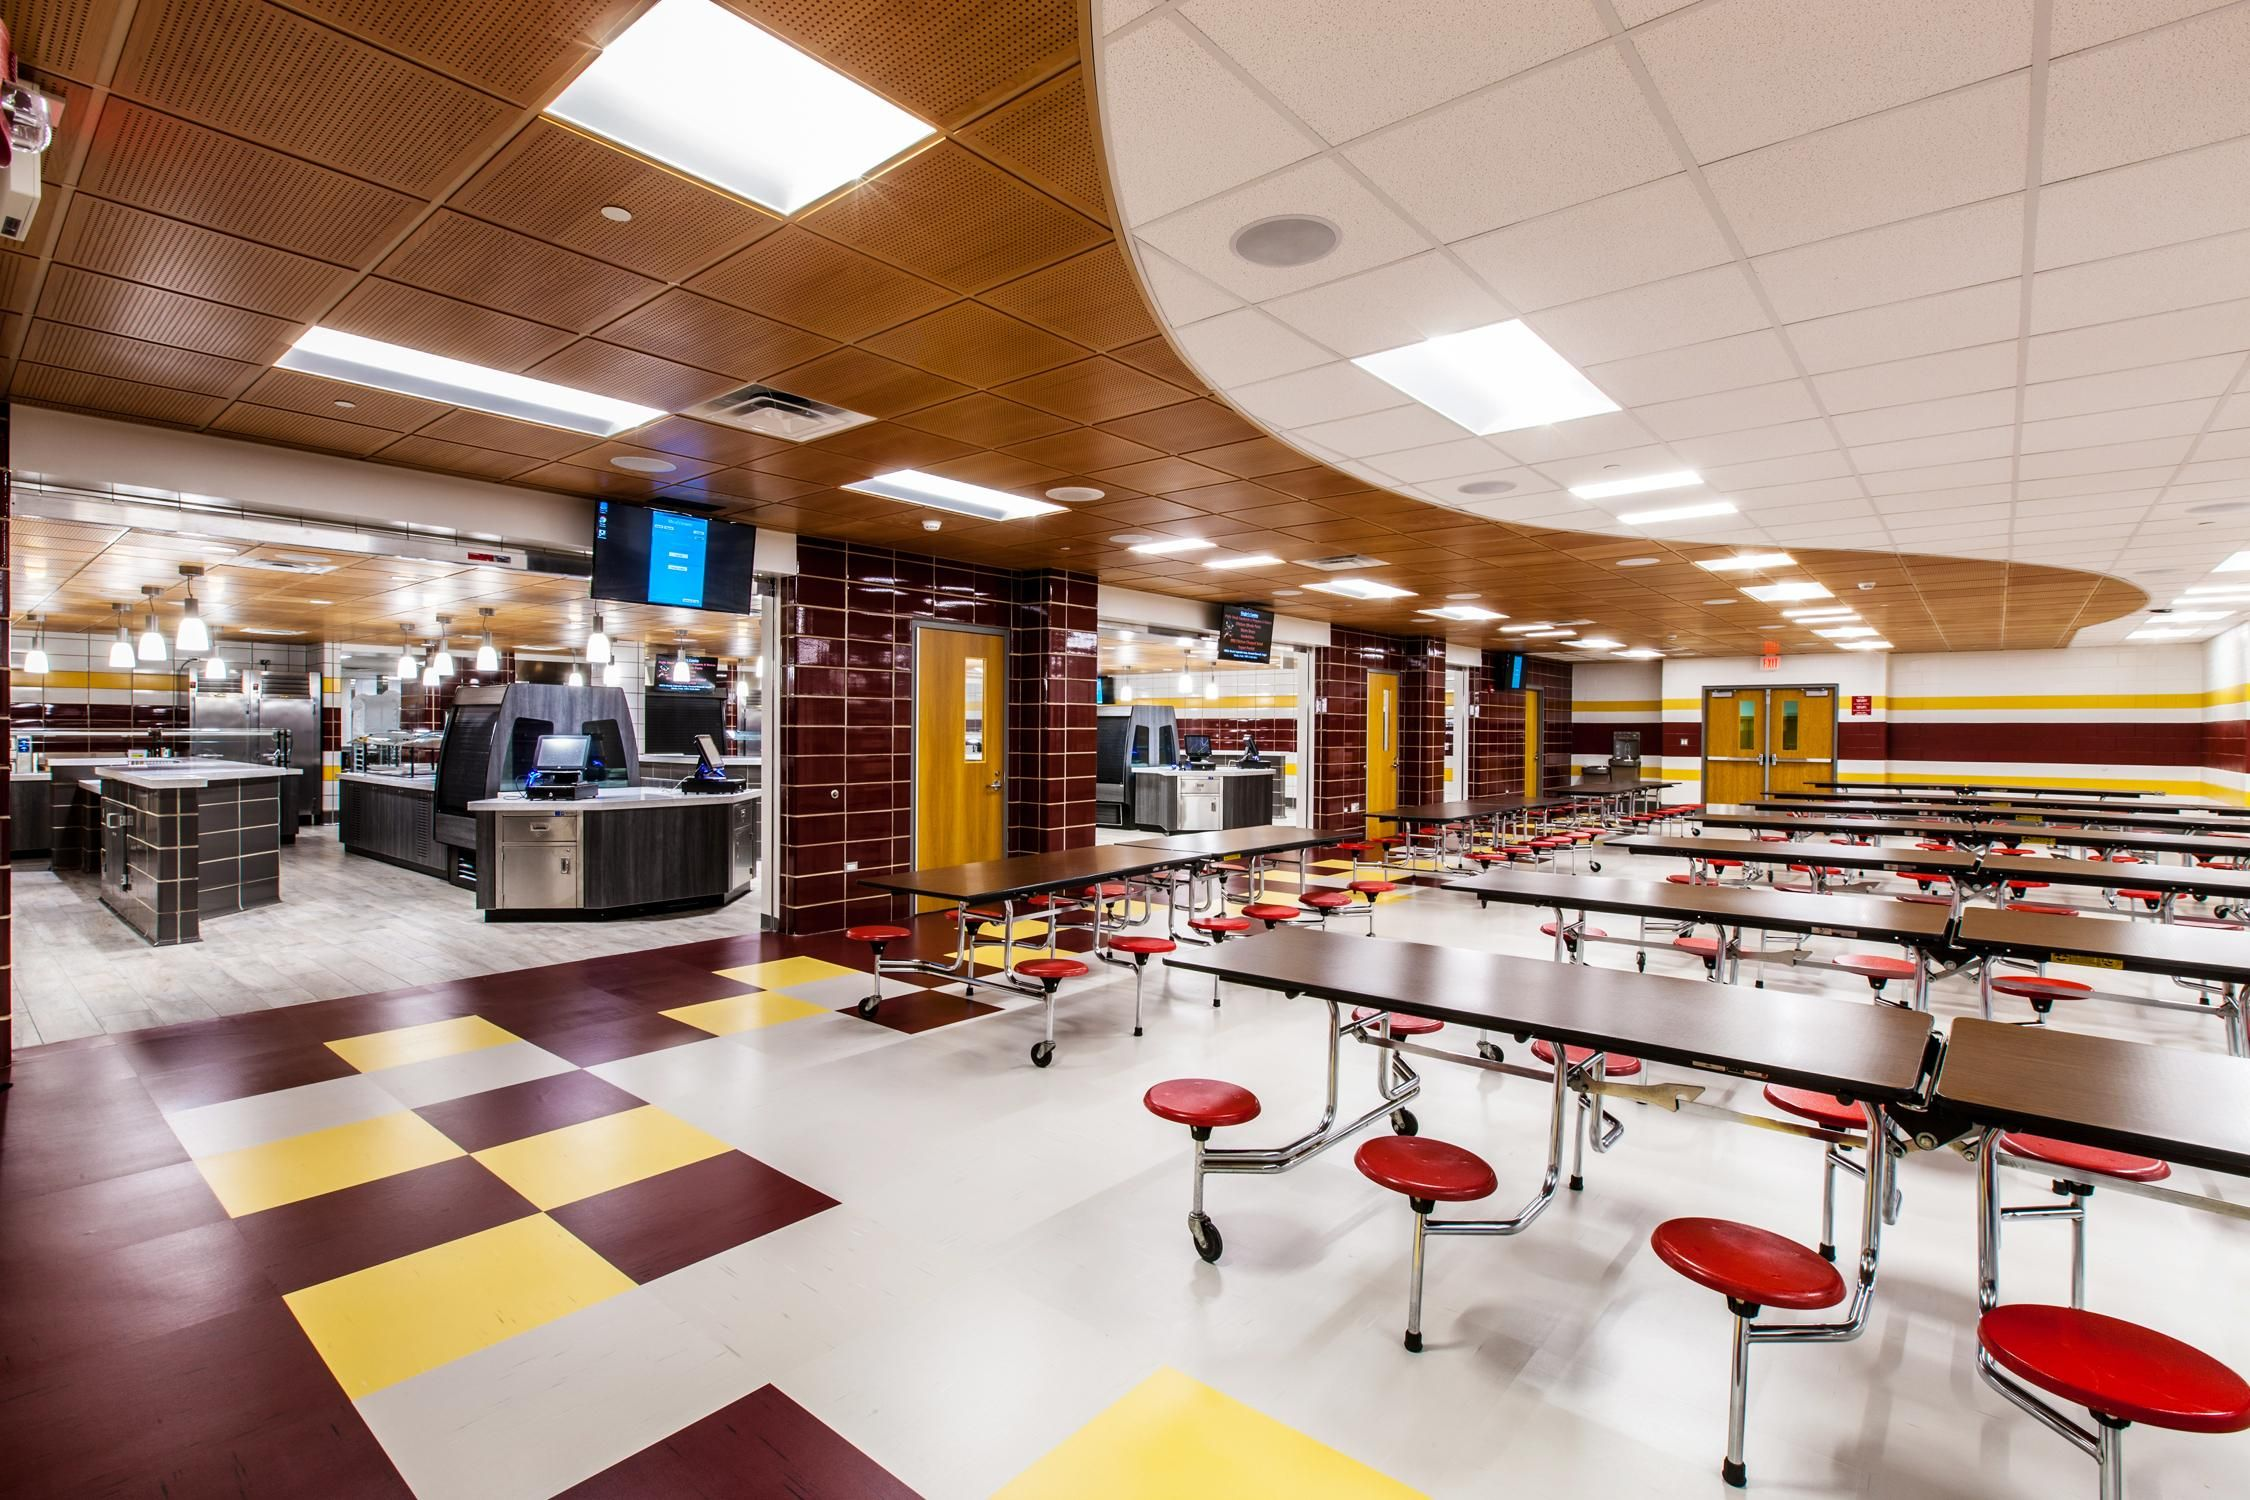 Schaumburg High School Il Rikett Quartz Tile Spartansurfaces Interiordesign